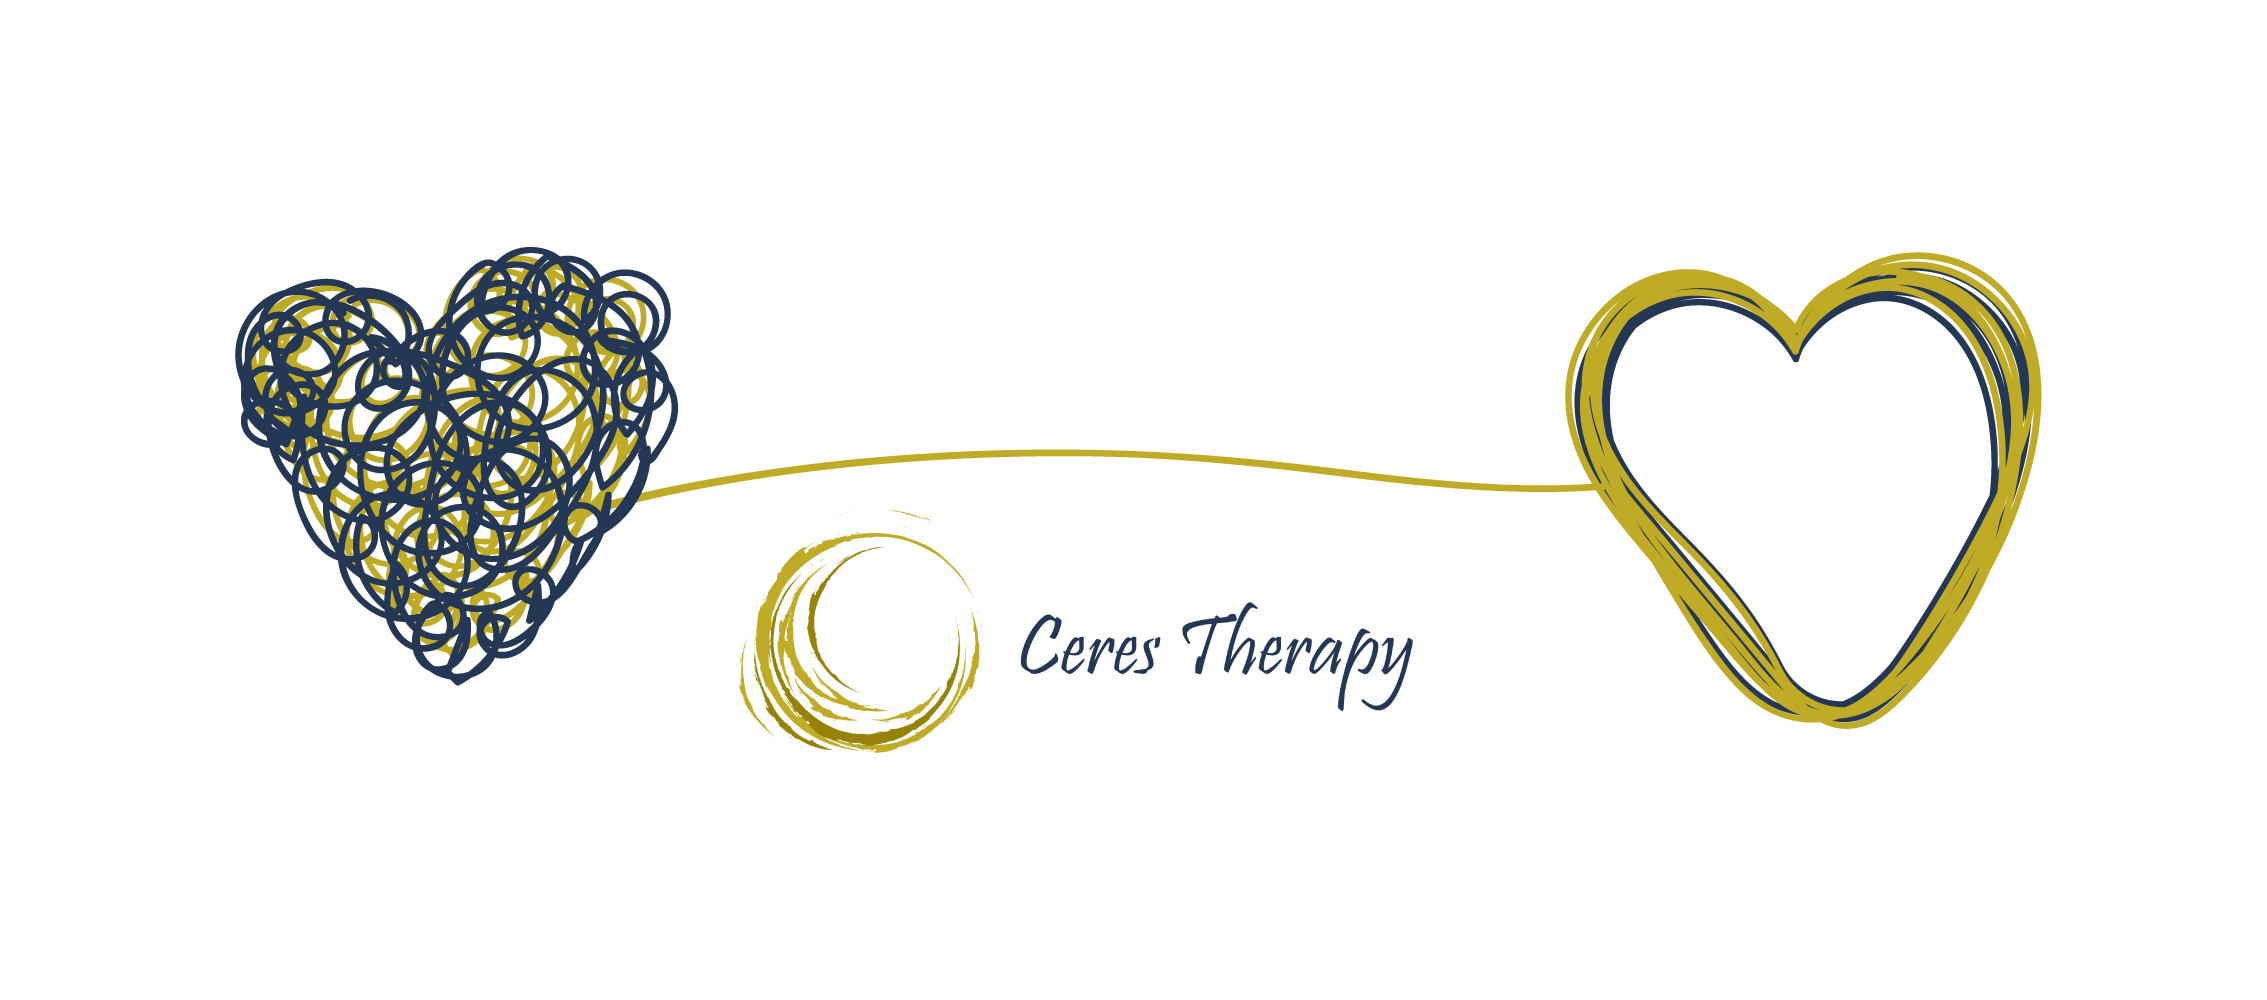 Couple and individual therapy